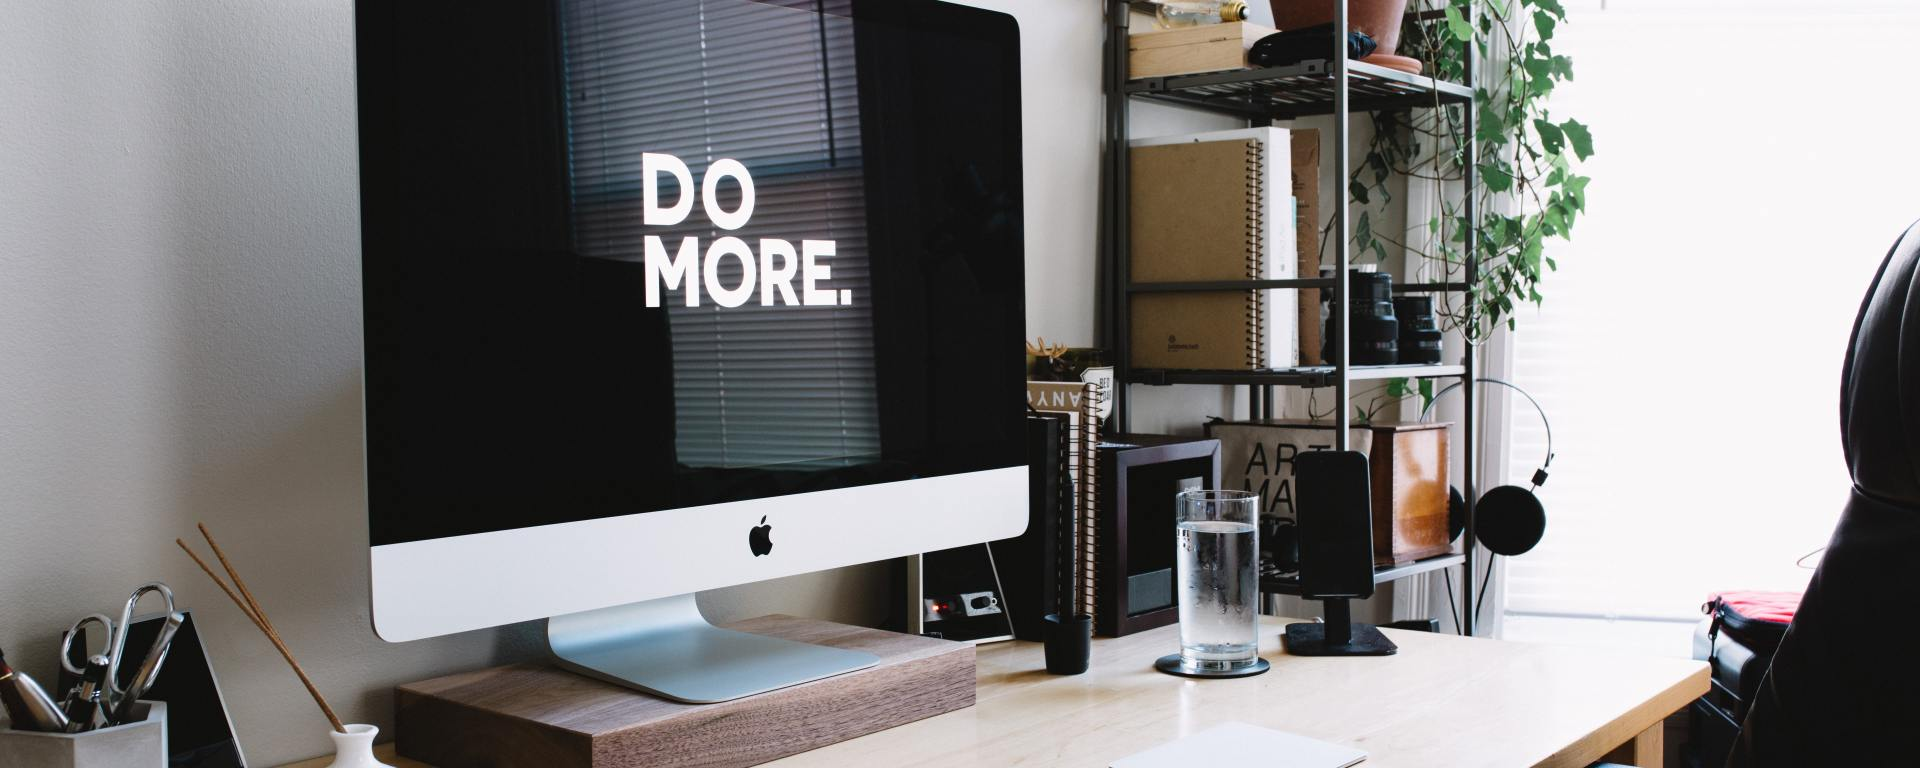 An image of a mac with the slogan 'do more' on screen, on a clean desk with shelving units.